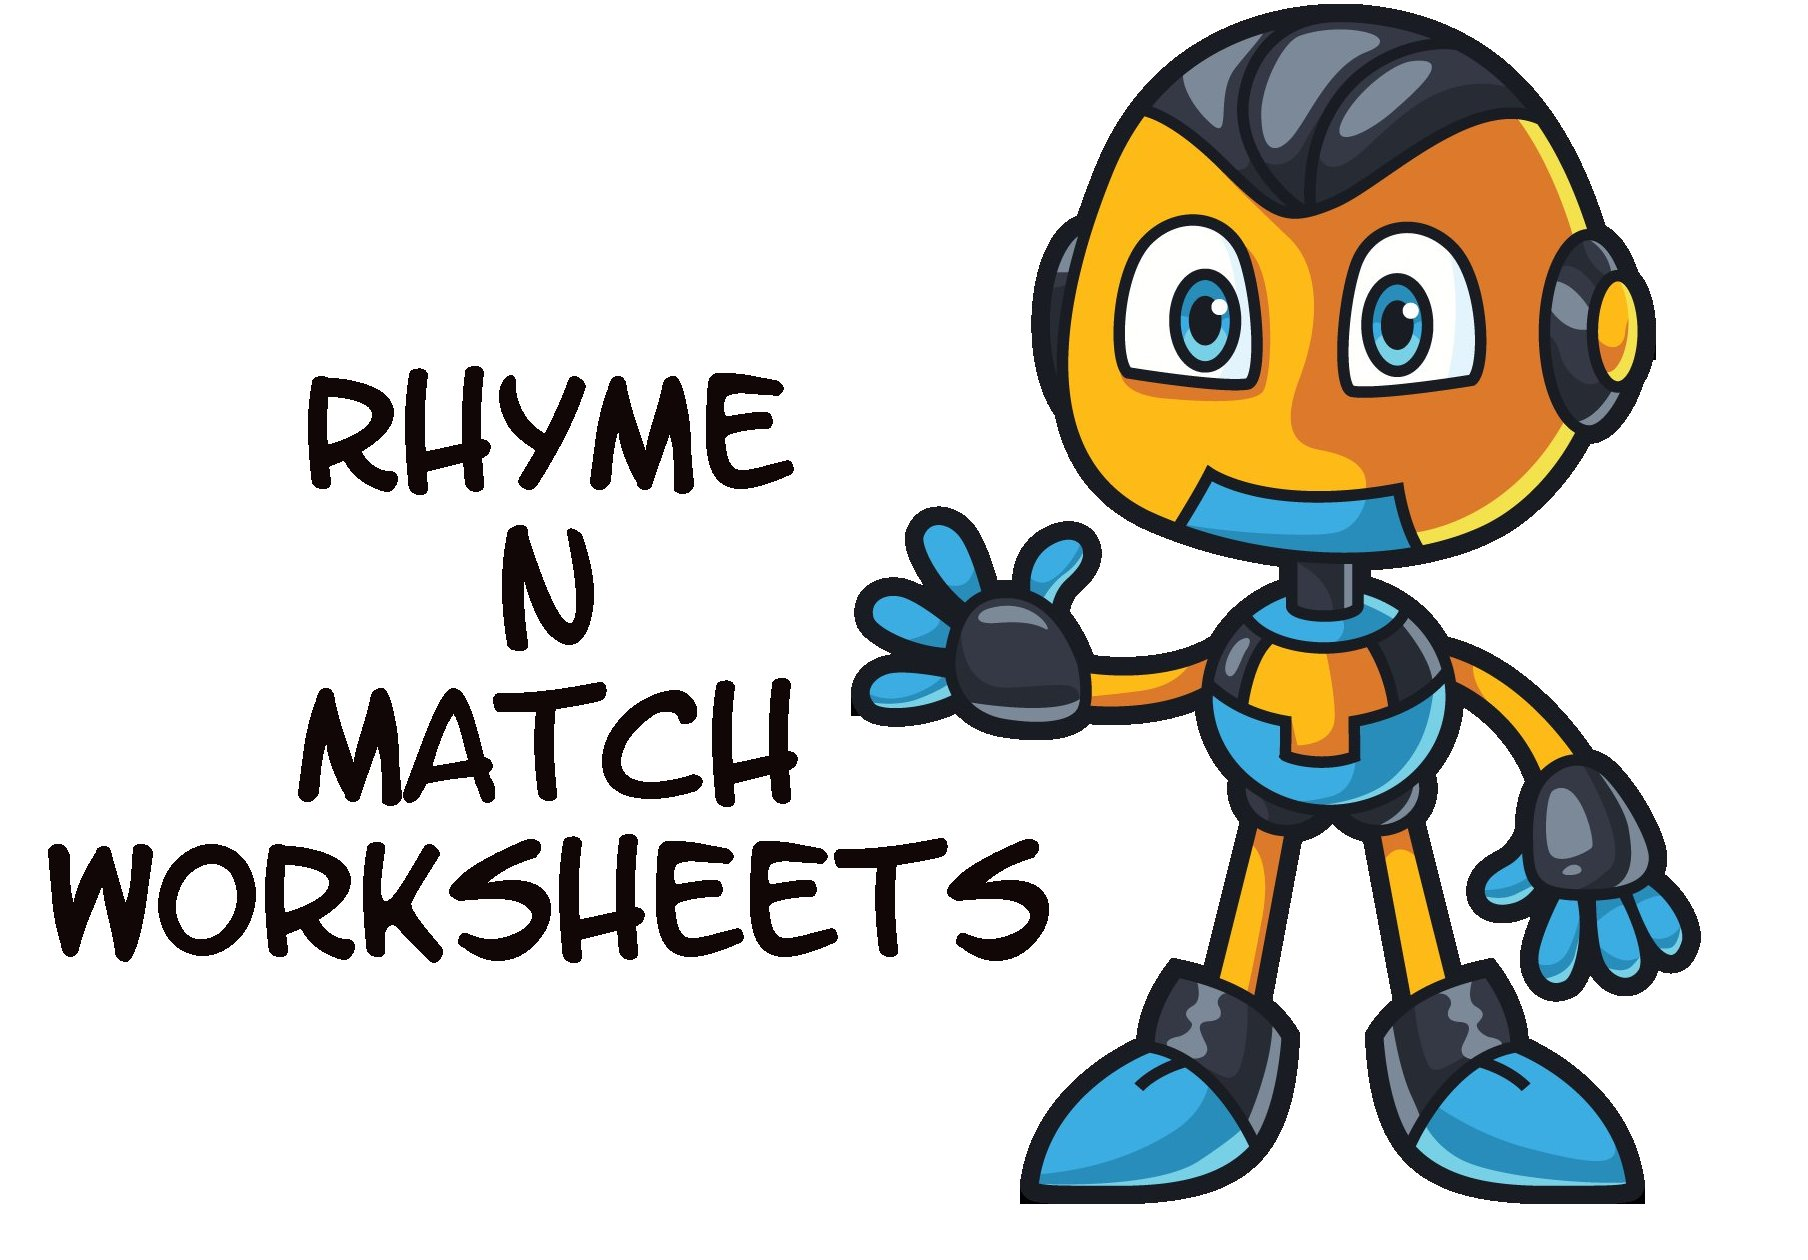 Rhyming Words Worksheets